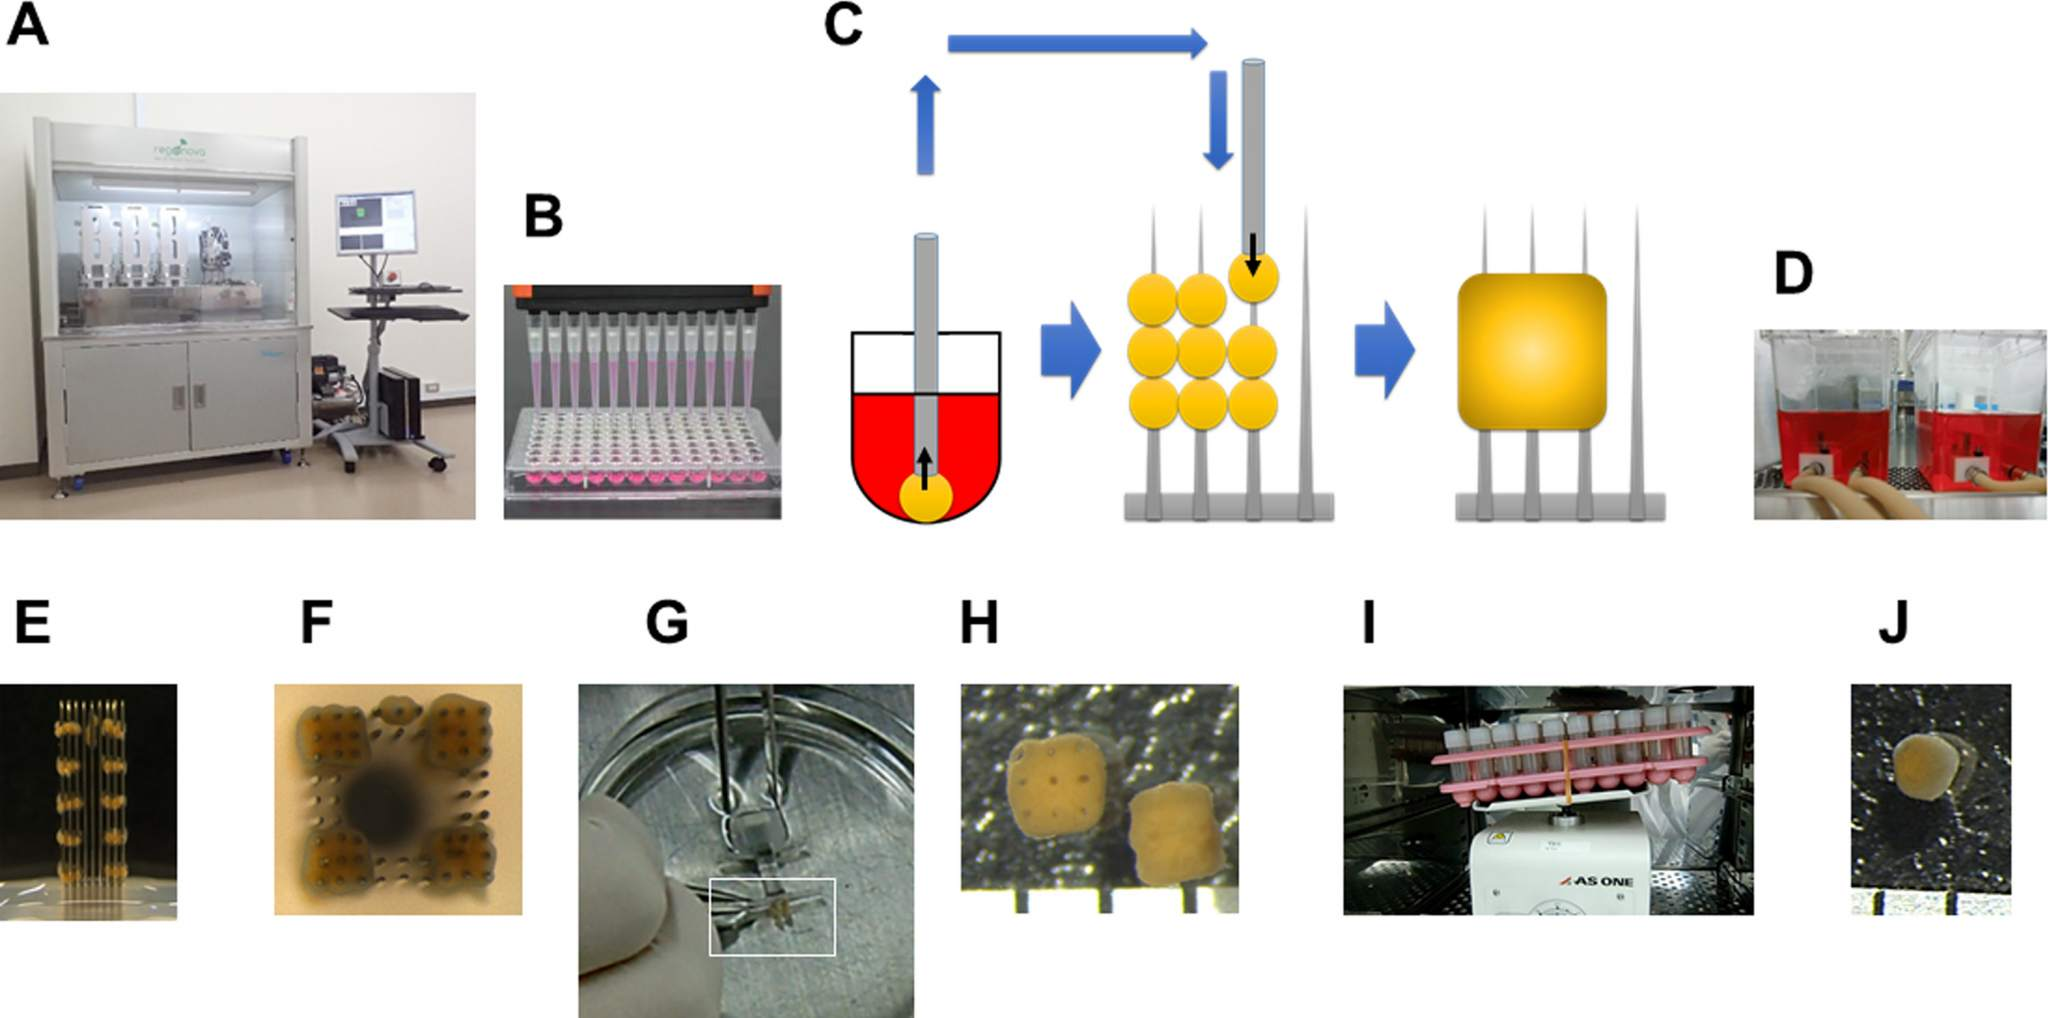 Figure 1 from the paper shows the 3D printing method which uses skewers (C) as supporting structure which are later removed. Image via Biochemistry and Biophysics Reports.